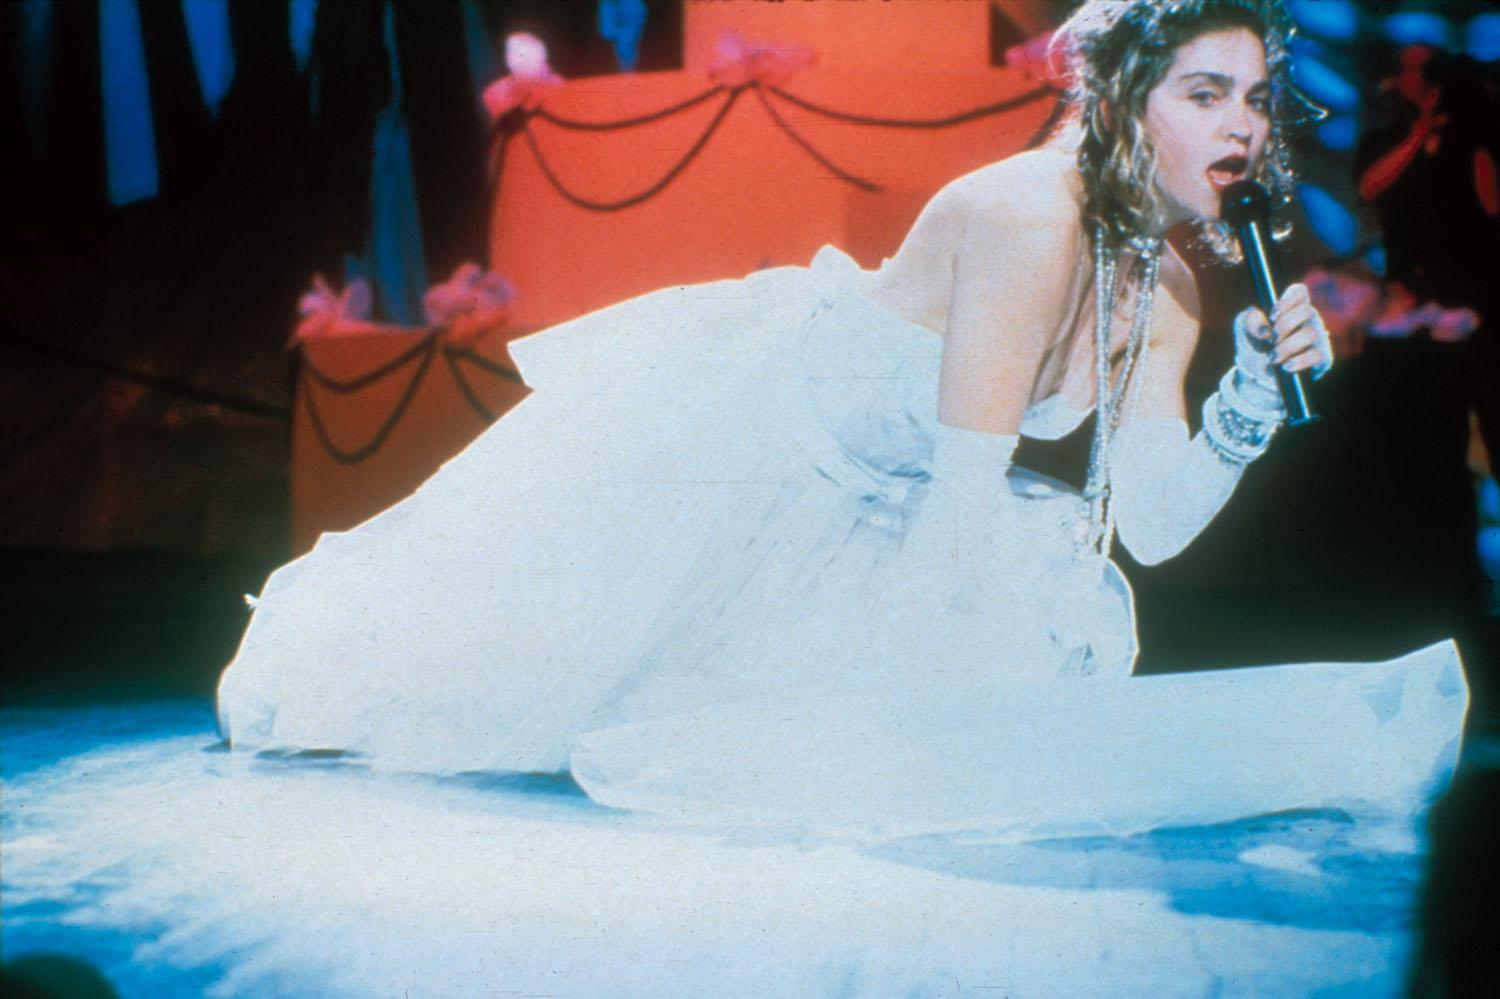 Madonna's stylist on her iconic bridal-dress-inspired VMA performance: 'I did create a legend'